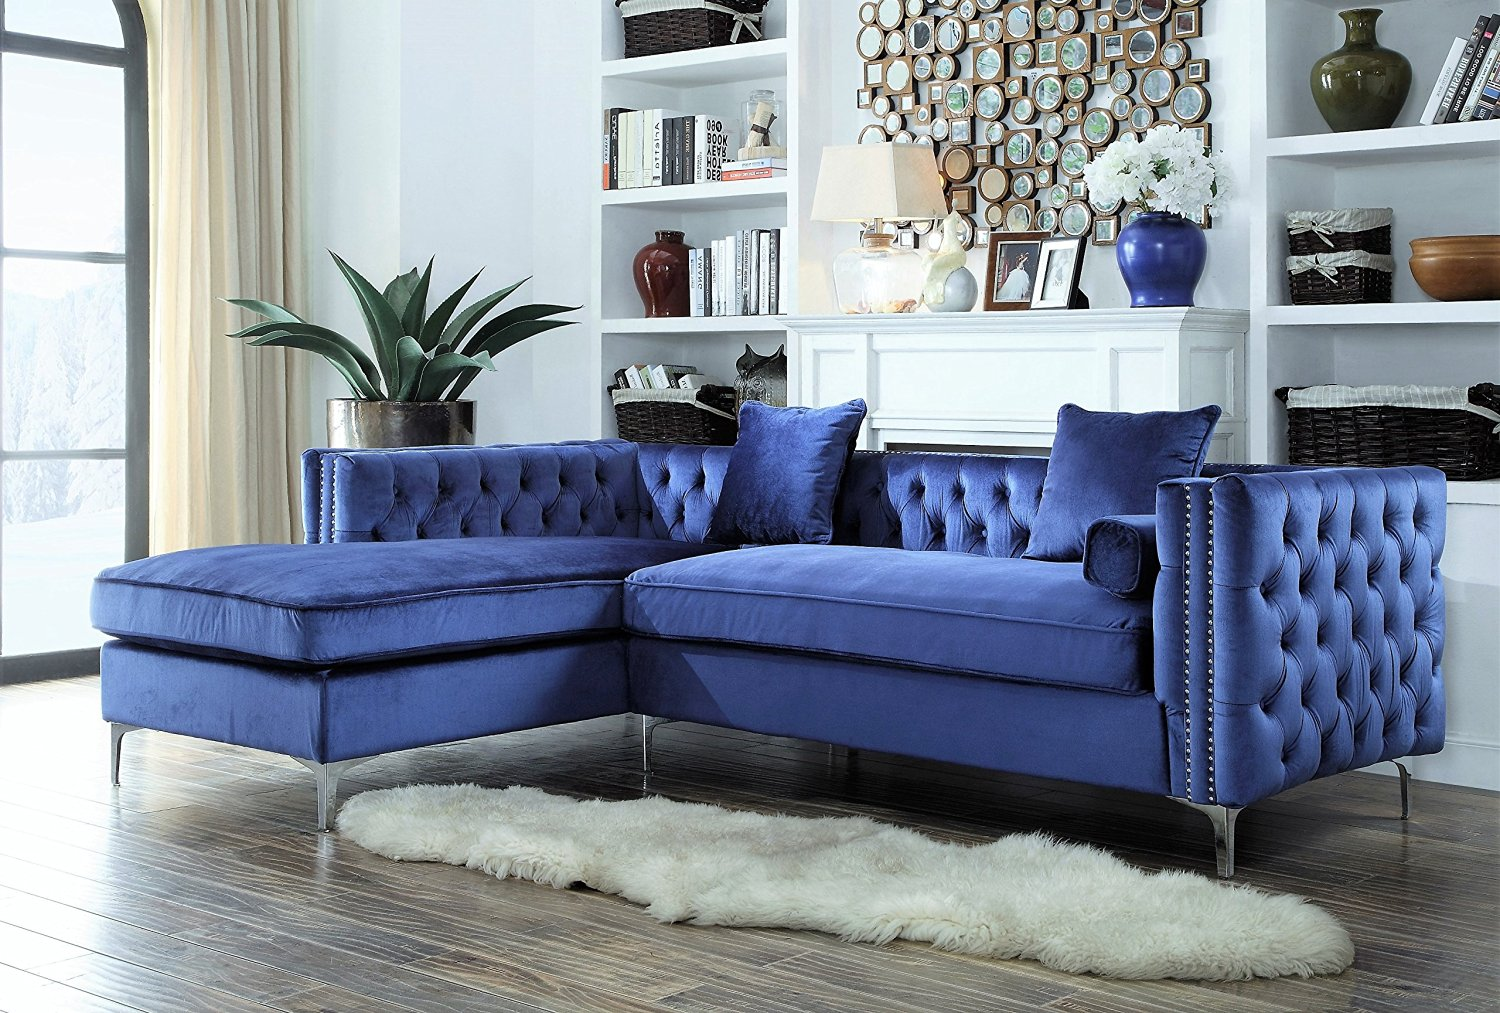 2afe7d062eef Iconic Home Da Vinci Tufted Silver Trim Navy Blue Velvet Left Facing  Sectional Sofa with Silver